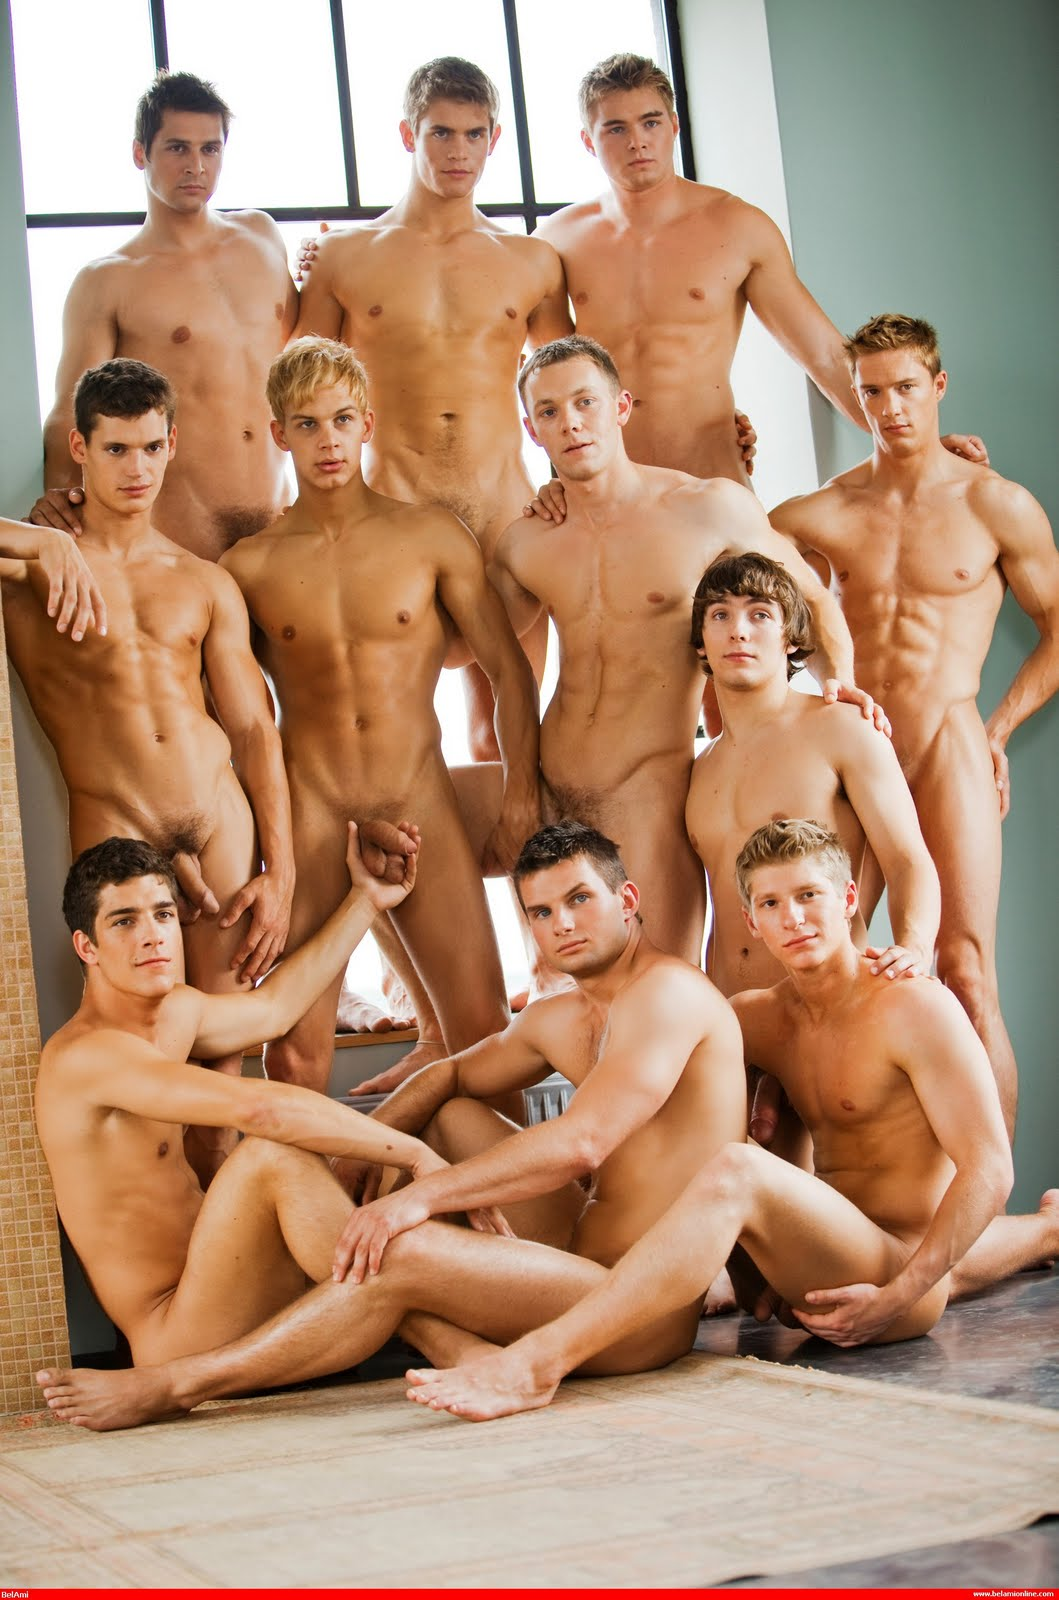 Join. naked men posing nude god knows!